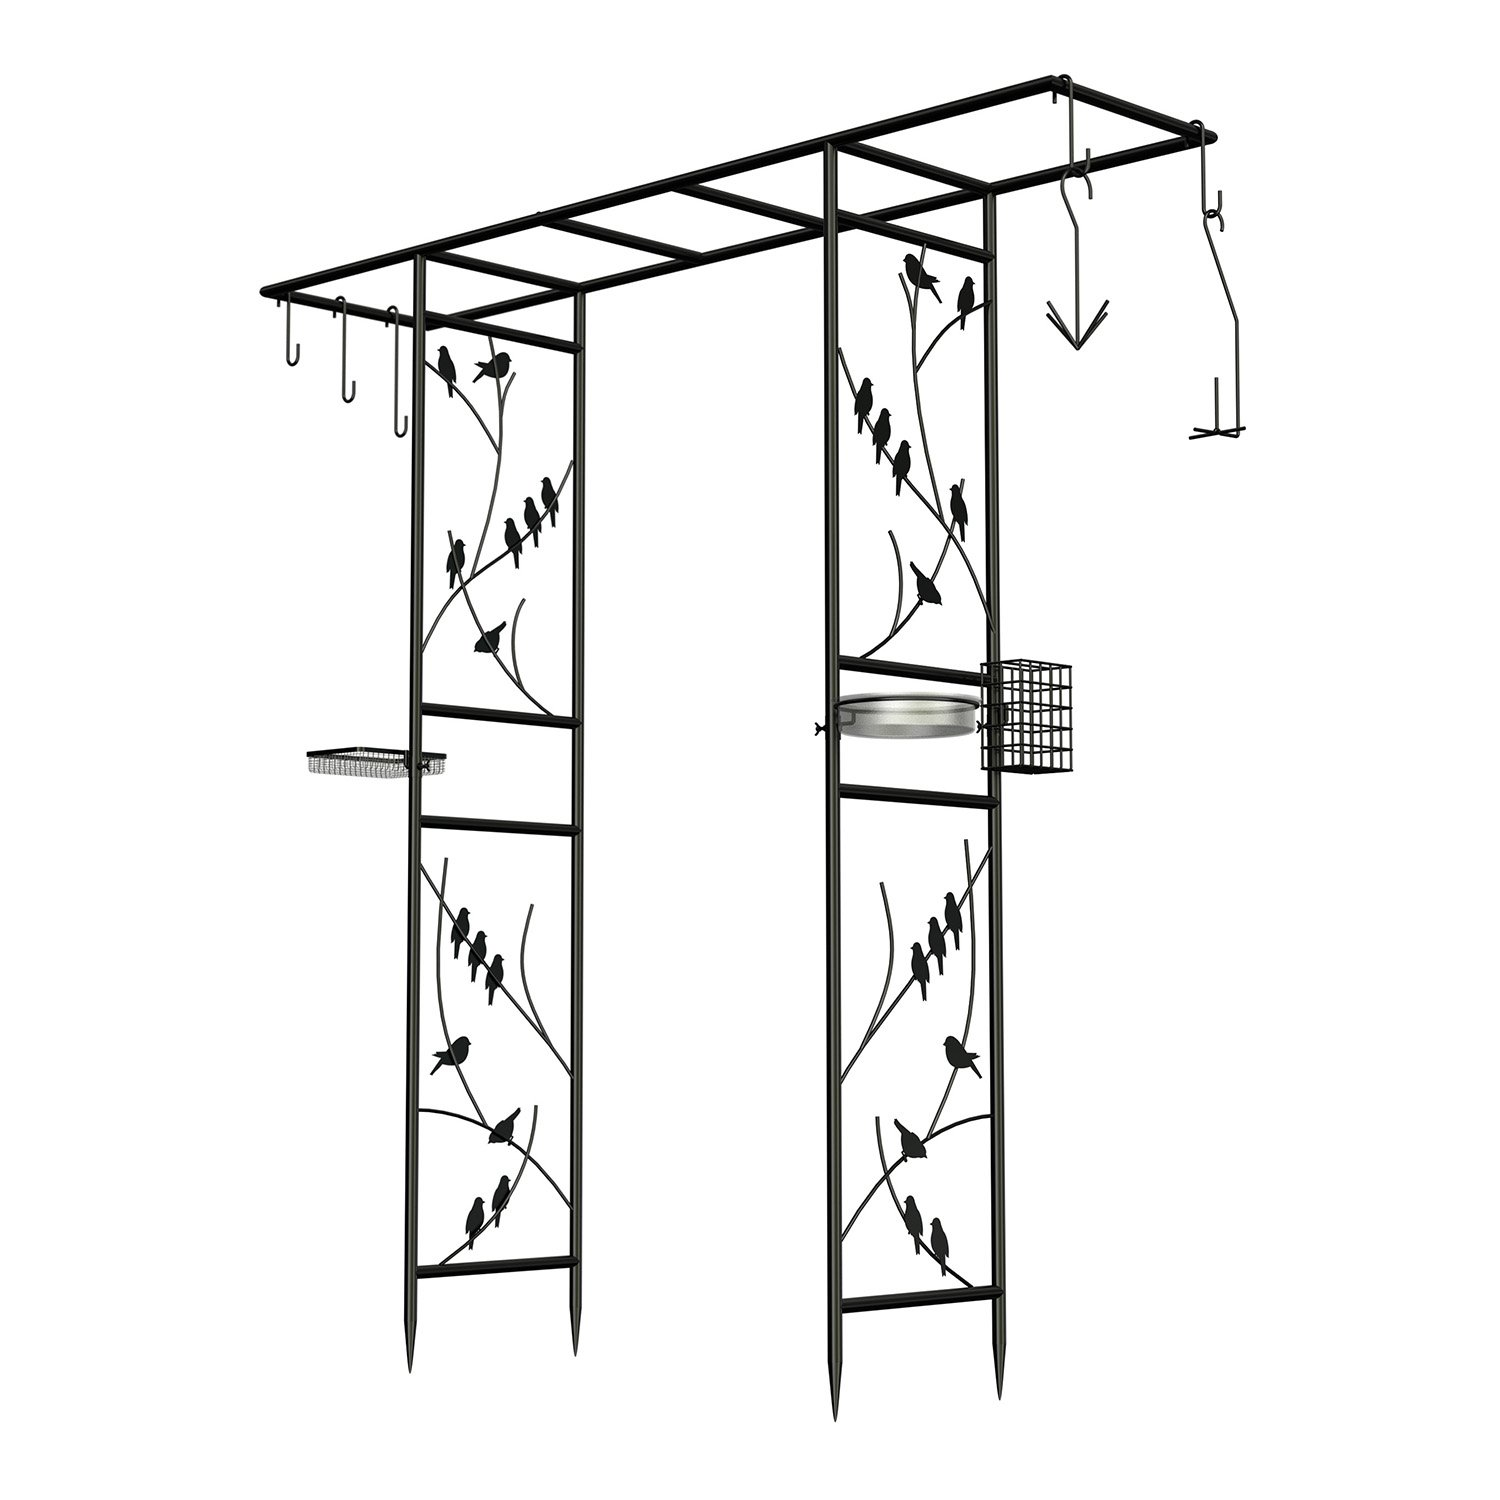 Panacea 83145 Garden Arbor and 10-Piece Bird Feeding Station with Accessories, Perching Birds Design, 84-Inch Height, Black by Panacea